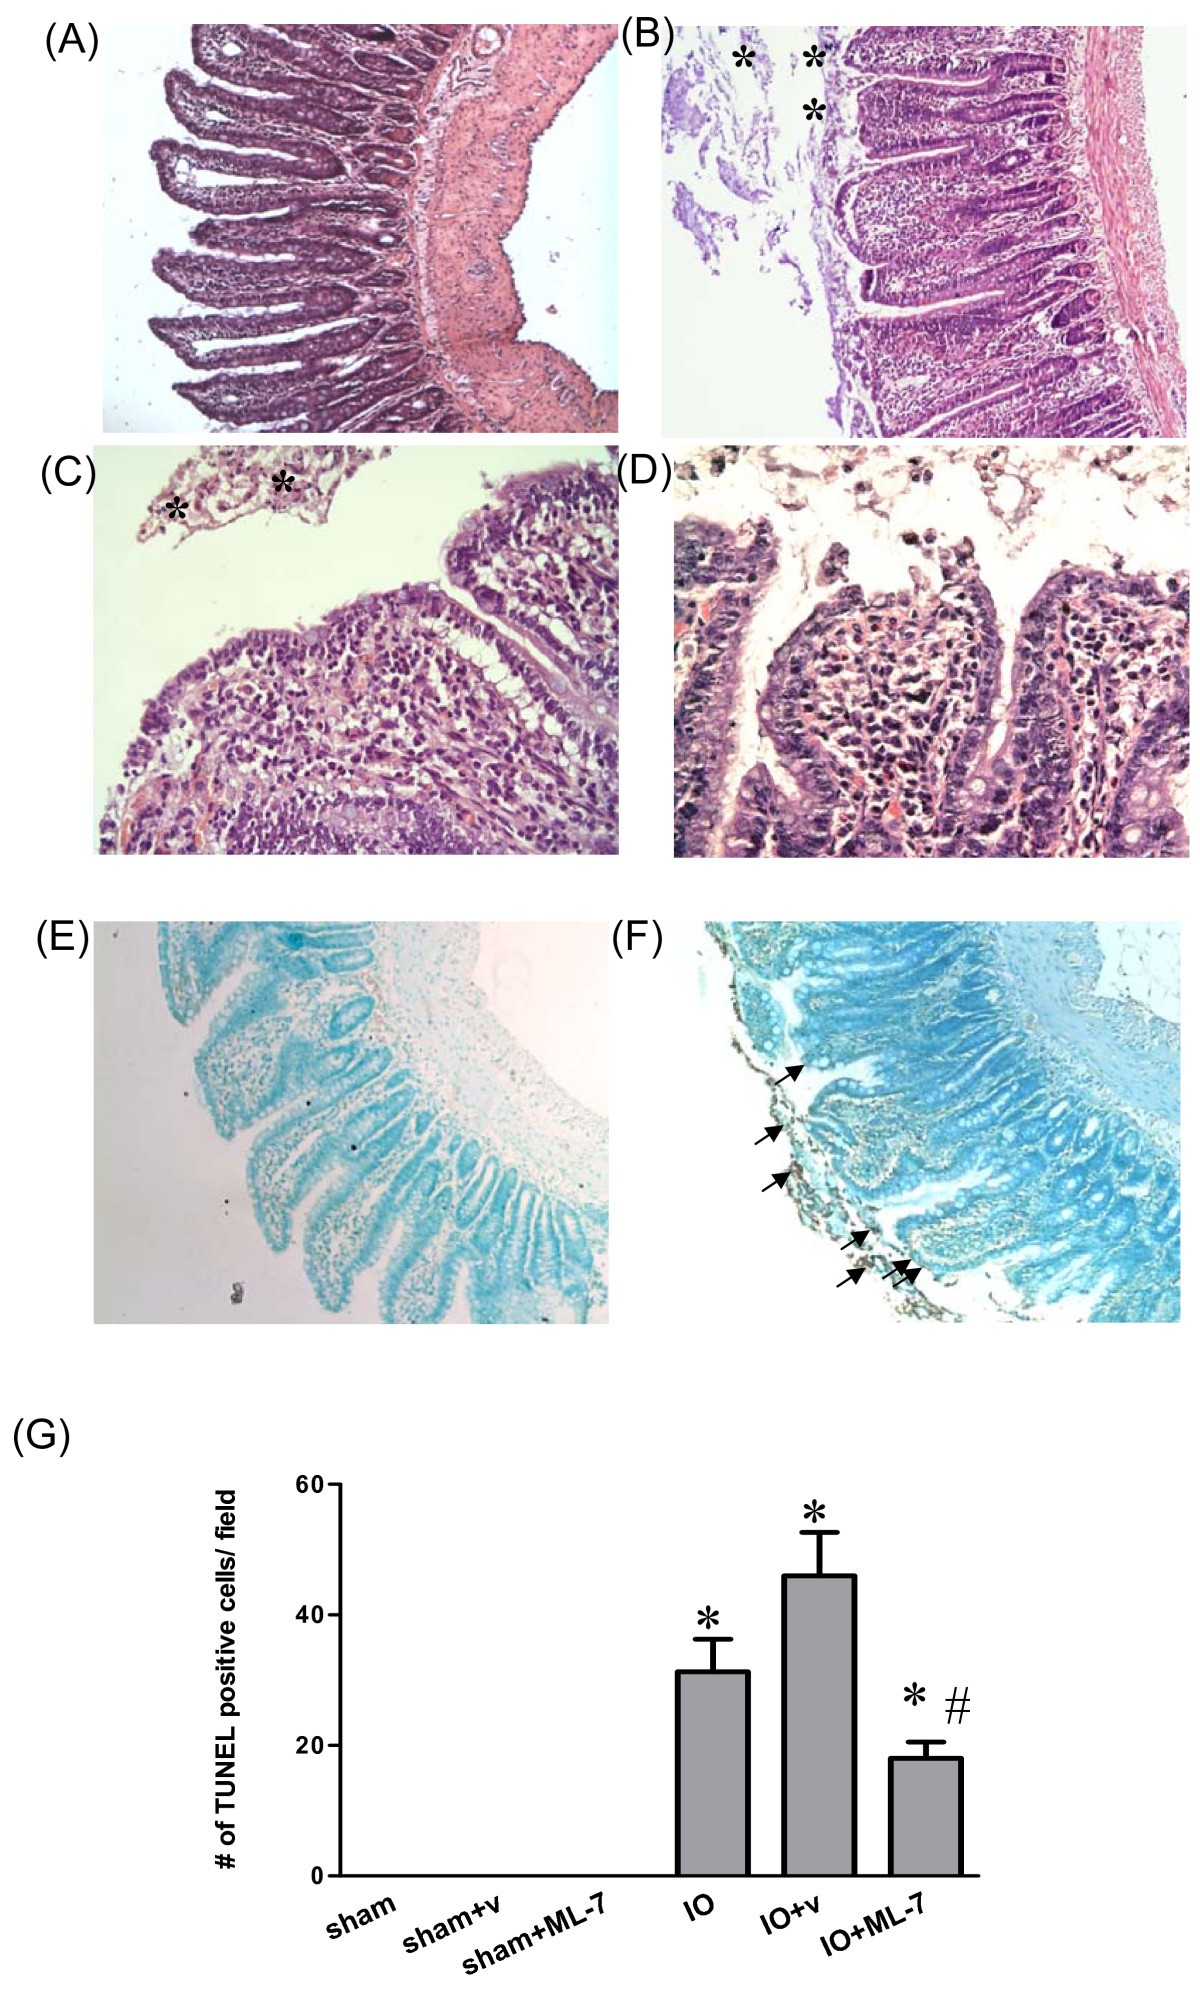 Role Of Myosin Light Chain Kinase In Intestinal Epithelial Barrier Defects In A Rat Model Of